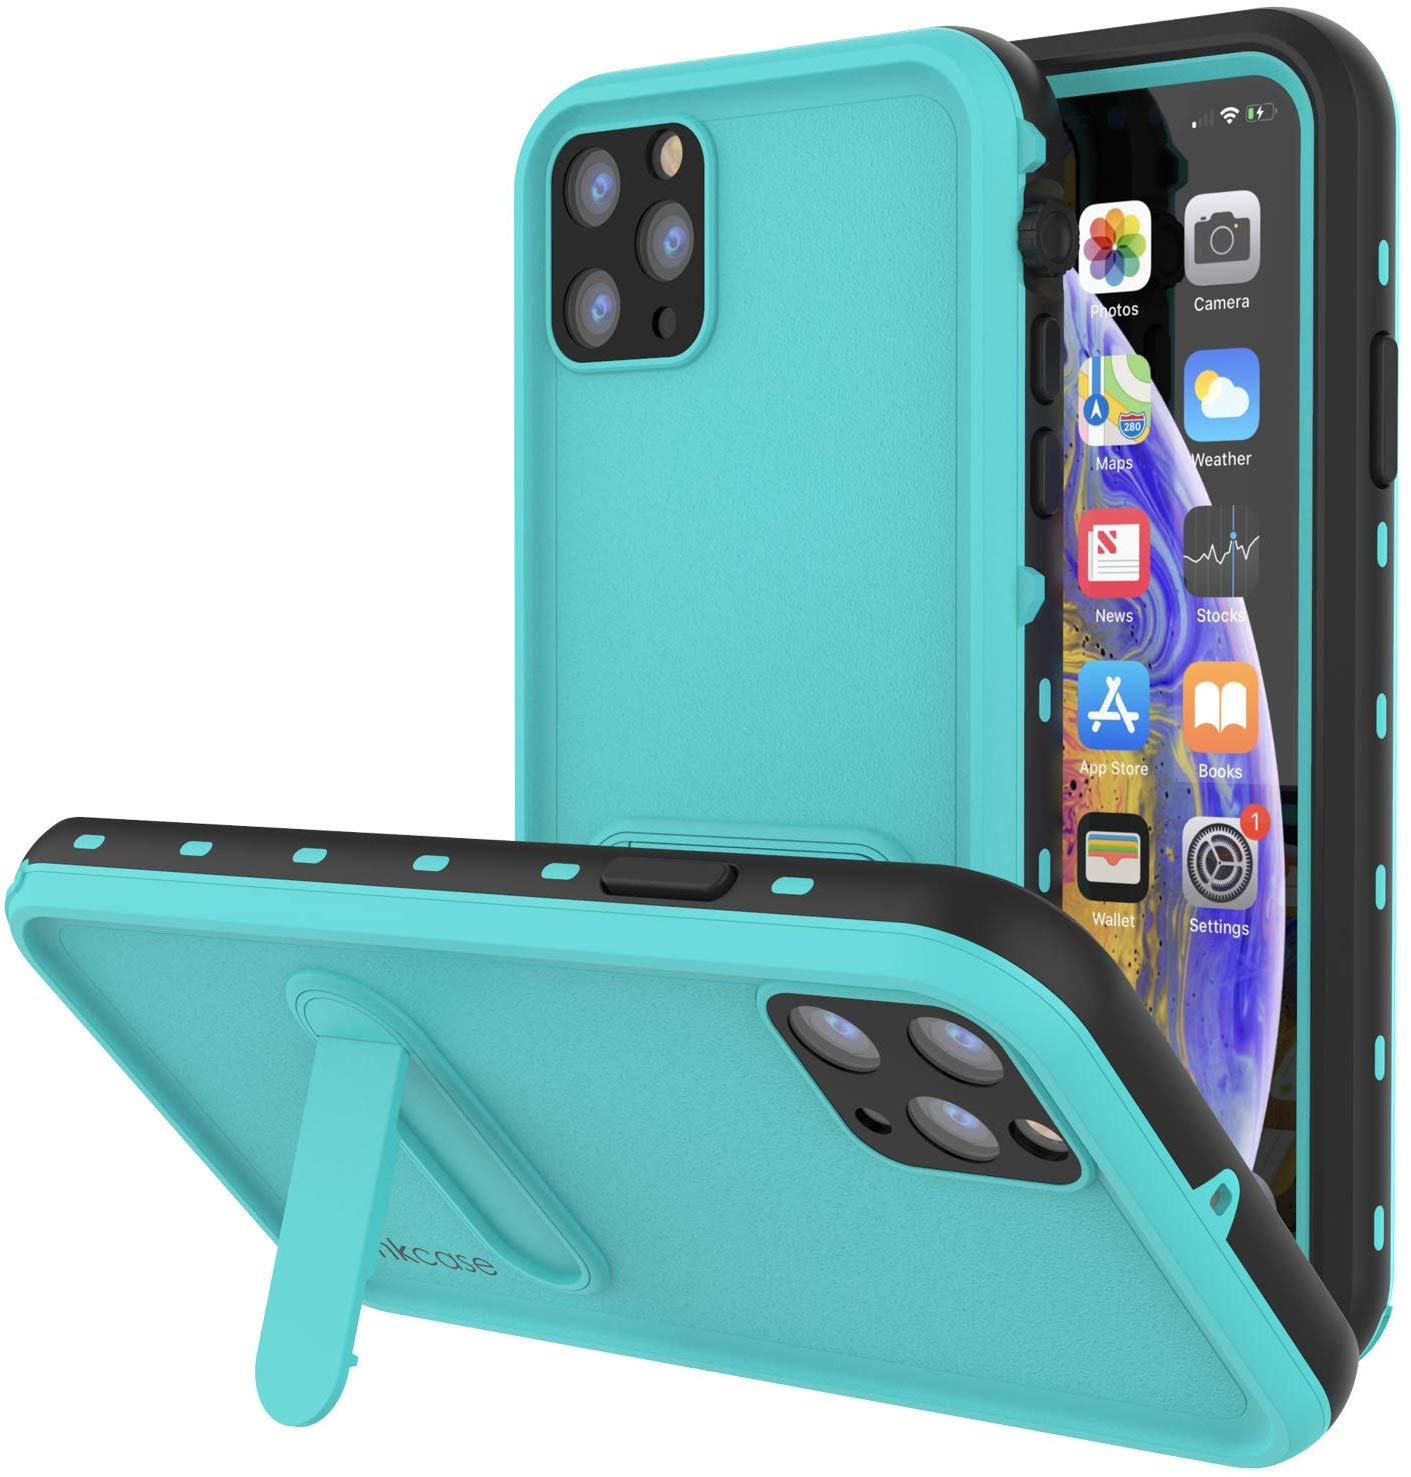 iPhone 11 Pro Max Waterproof Case, Punkcase [KickStud Series] Armor Cover [Teal]